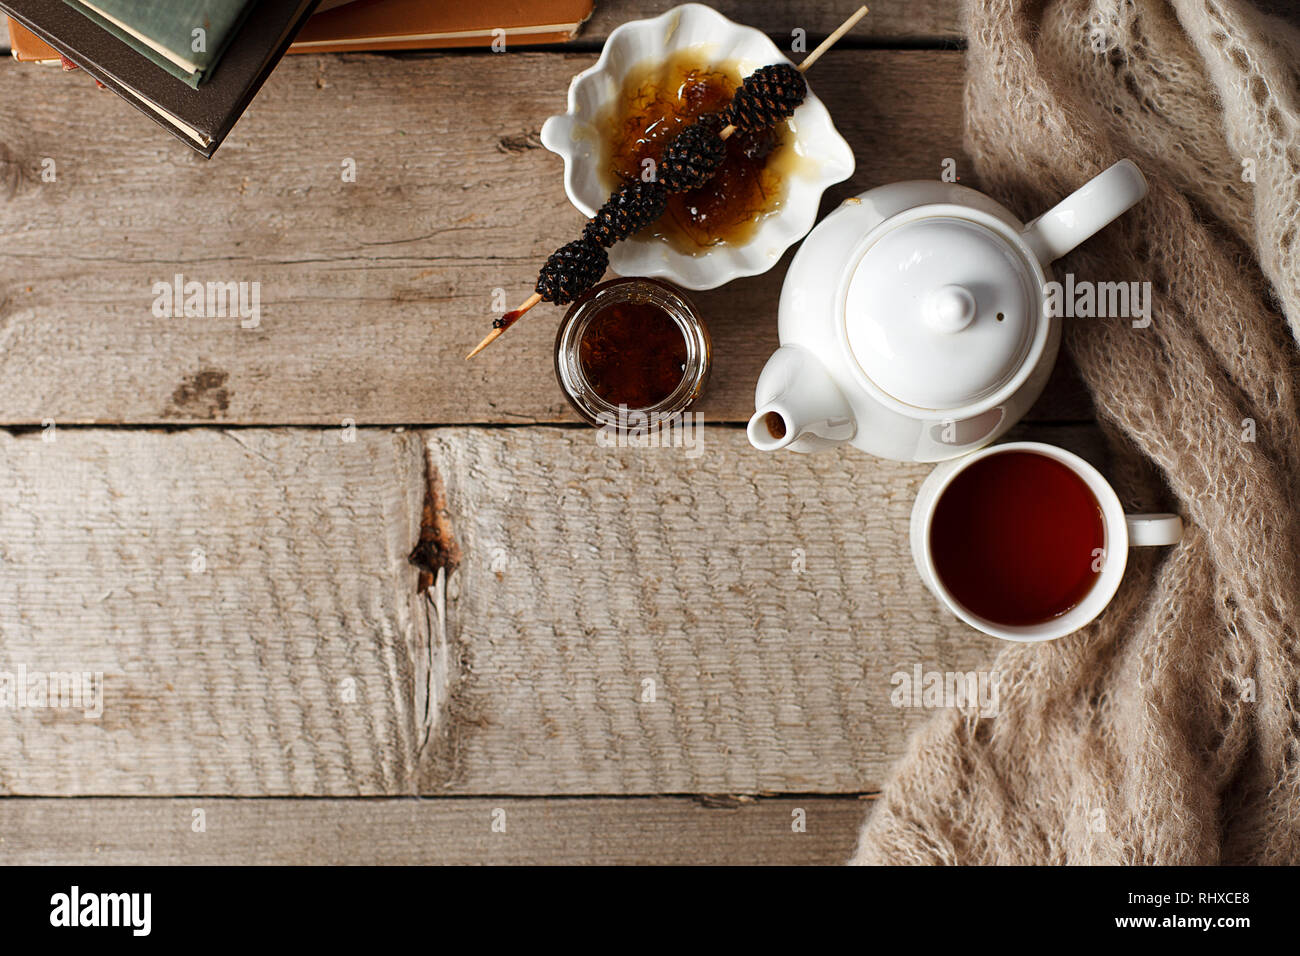 cup of tea with siberian sweetness - sugar cones, teapot and old books on wooden background, concept of cozy teatime, winter autumn weekend, leisure t - Stock Image